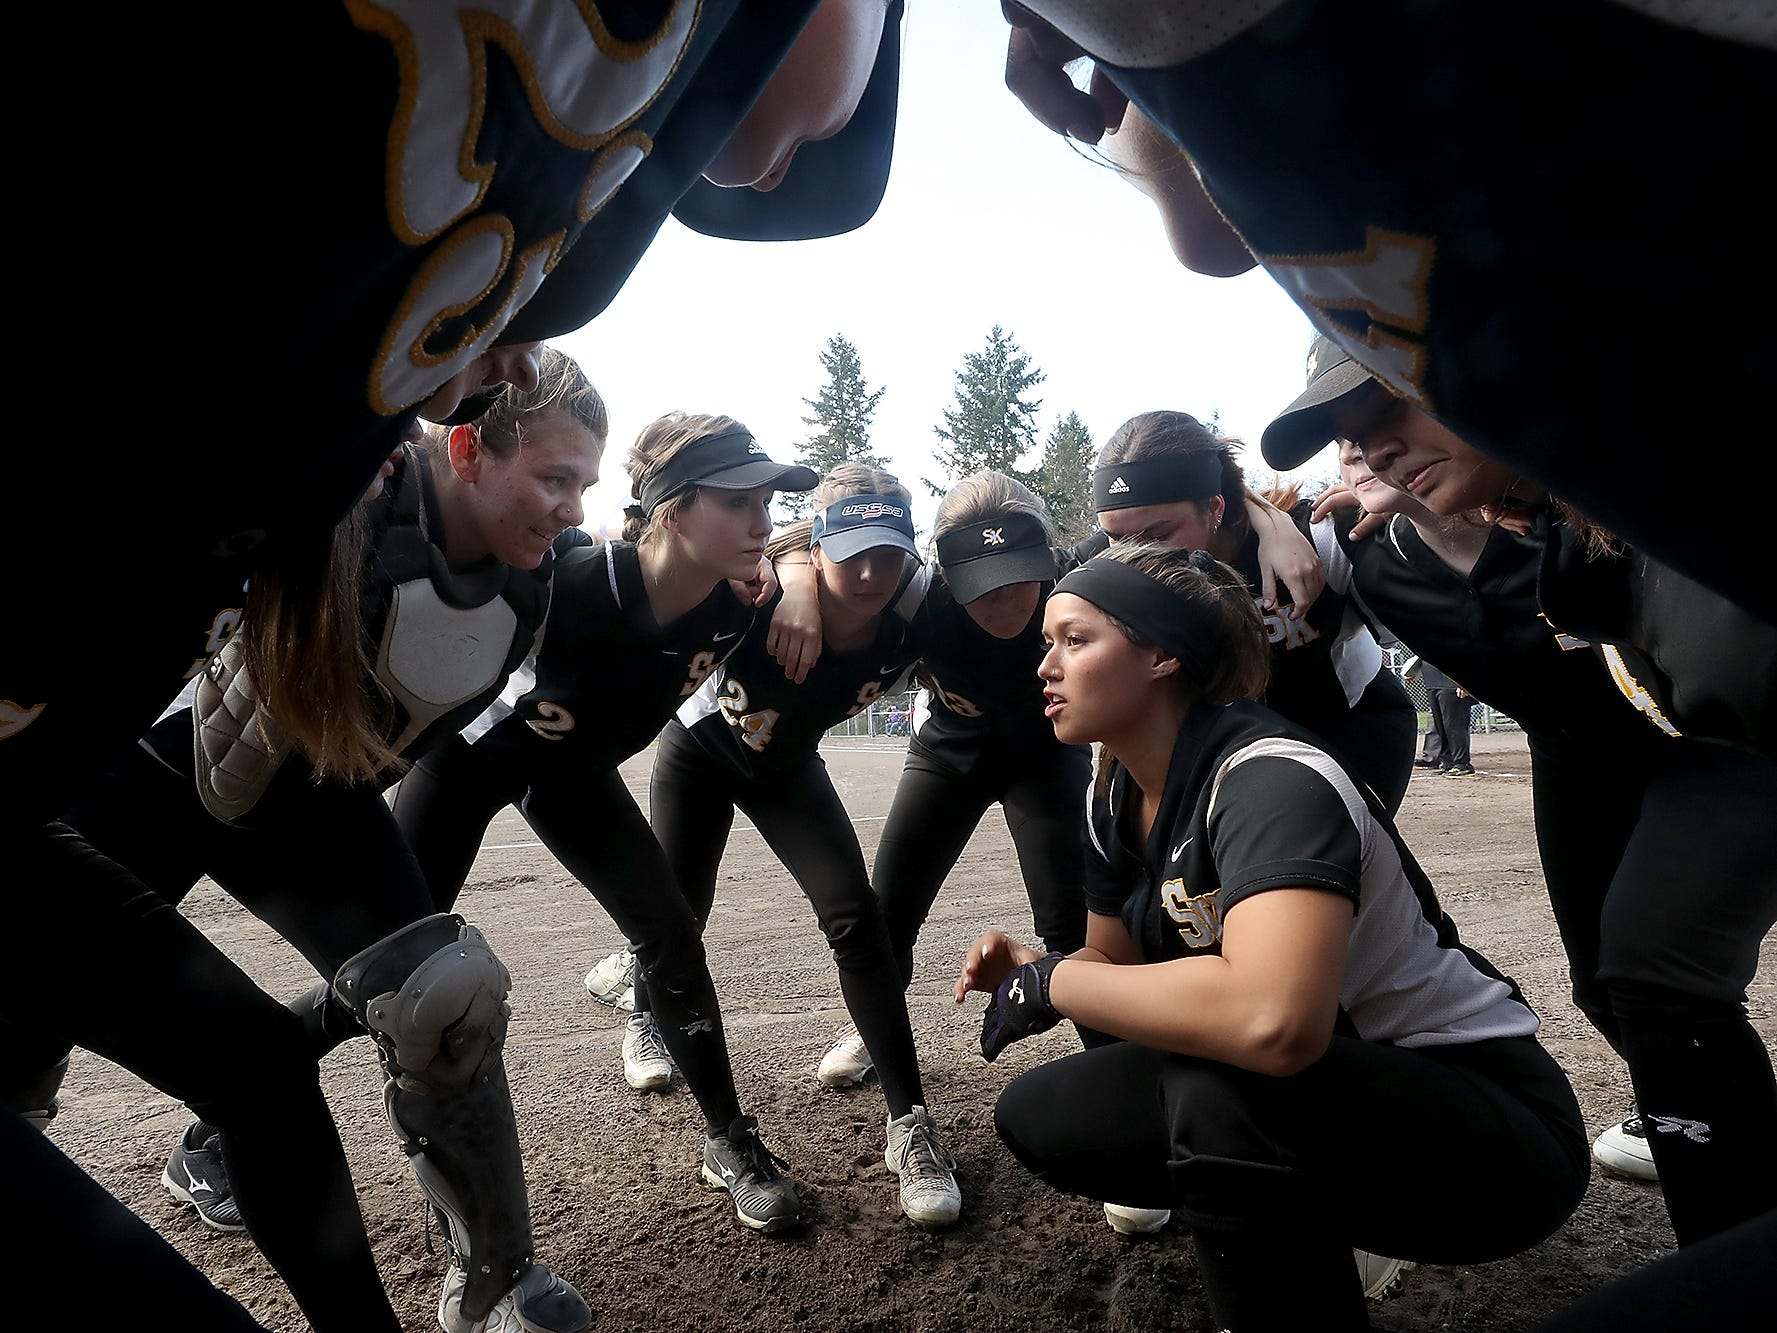 South Kitsap softball Captain Jordynn Lawrence crouches in the middle of the circle as she gives a pep talk to the team before their game against Puyallup on Tuesday, March 26, 2019.